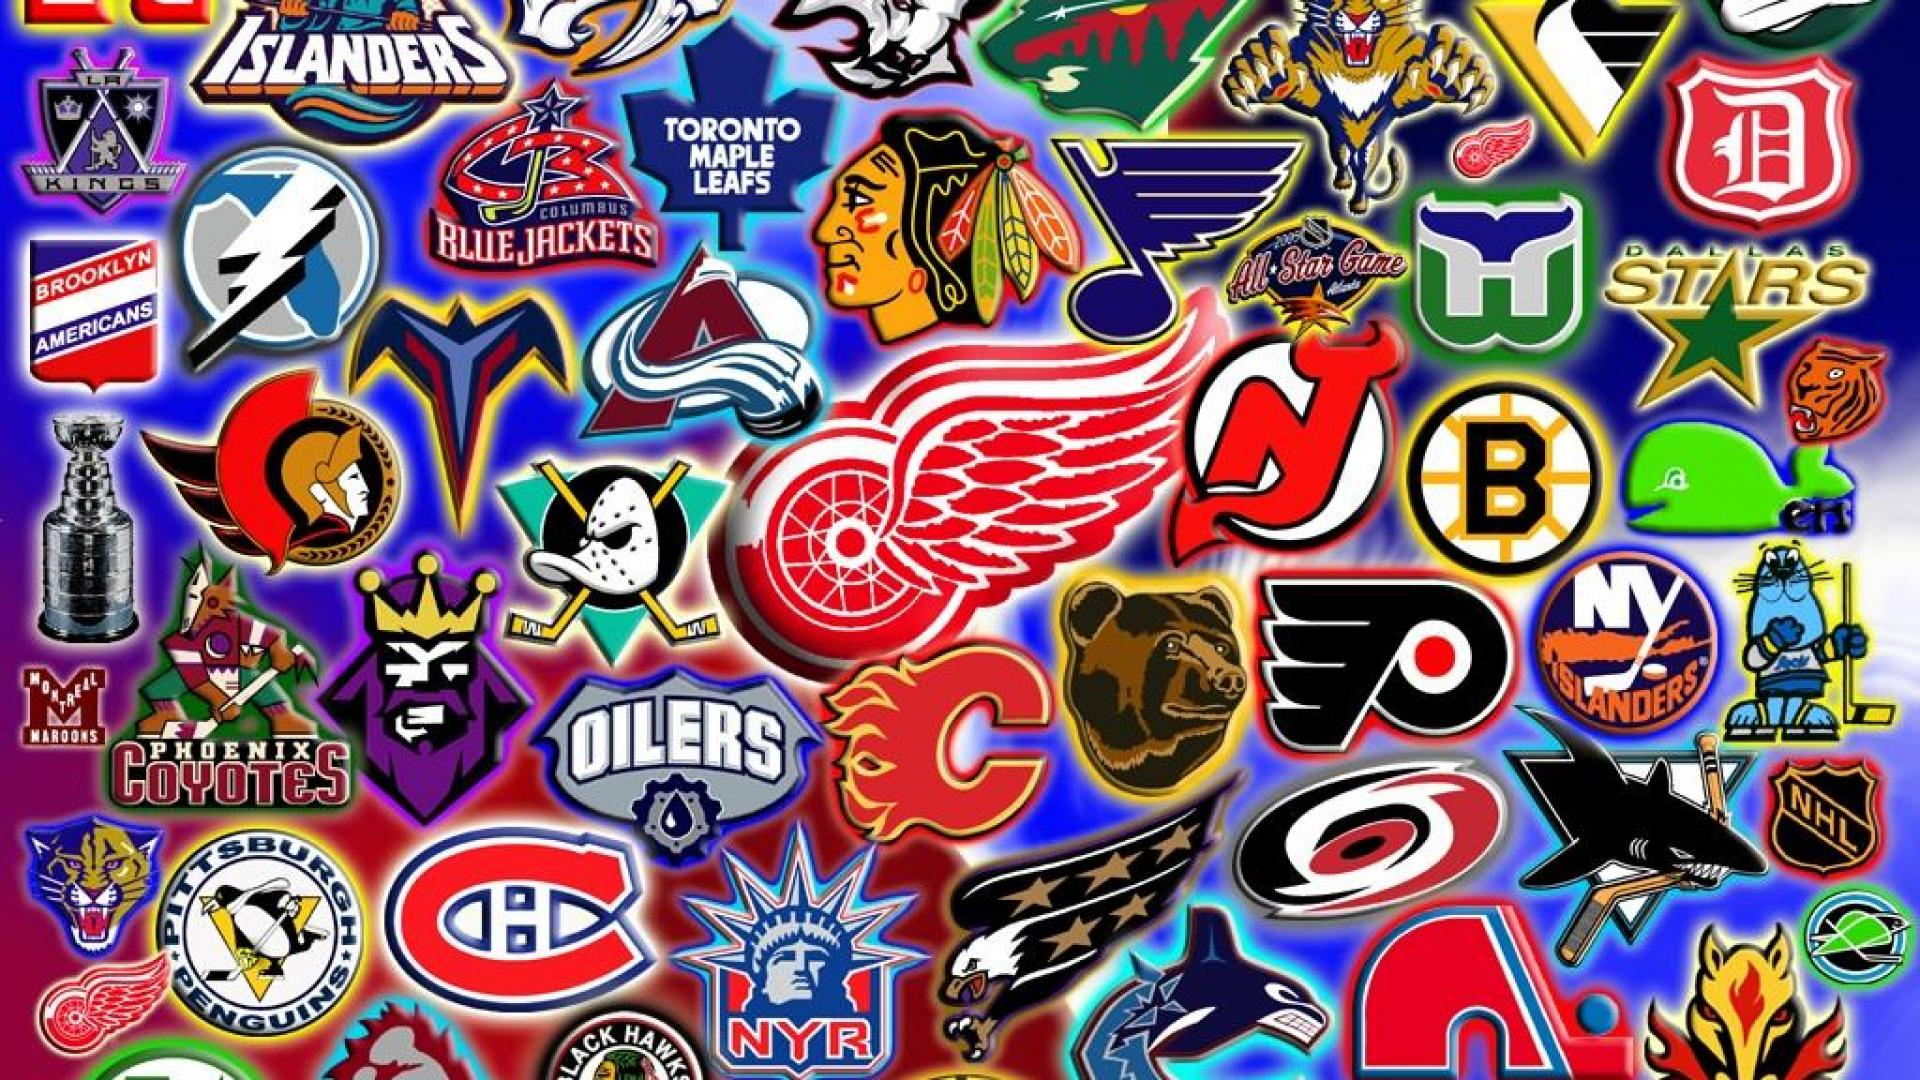 NHL wallpaper 1920x1080 54057 1920x1080